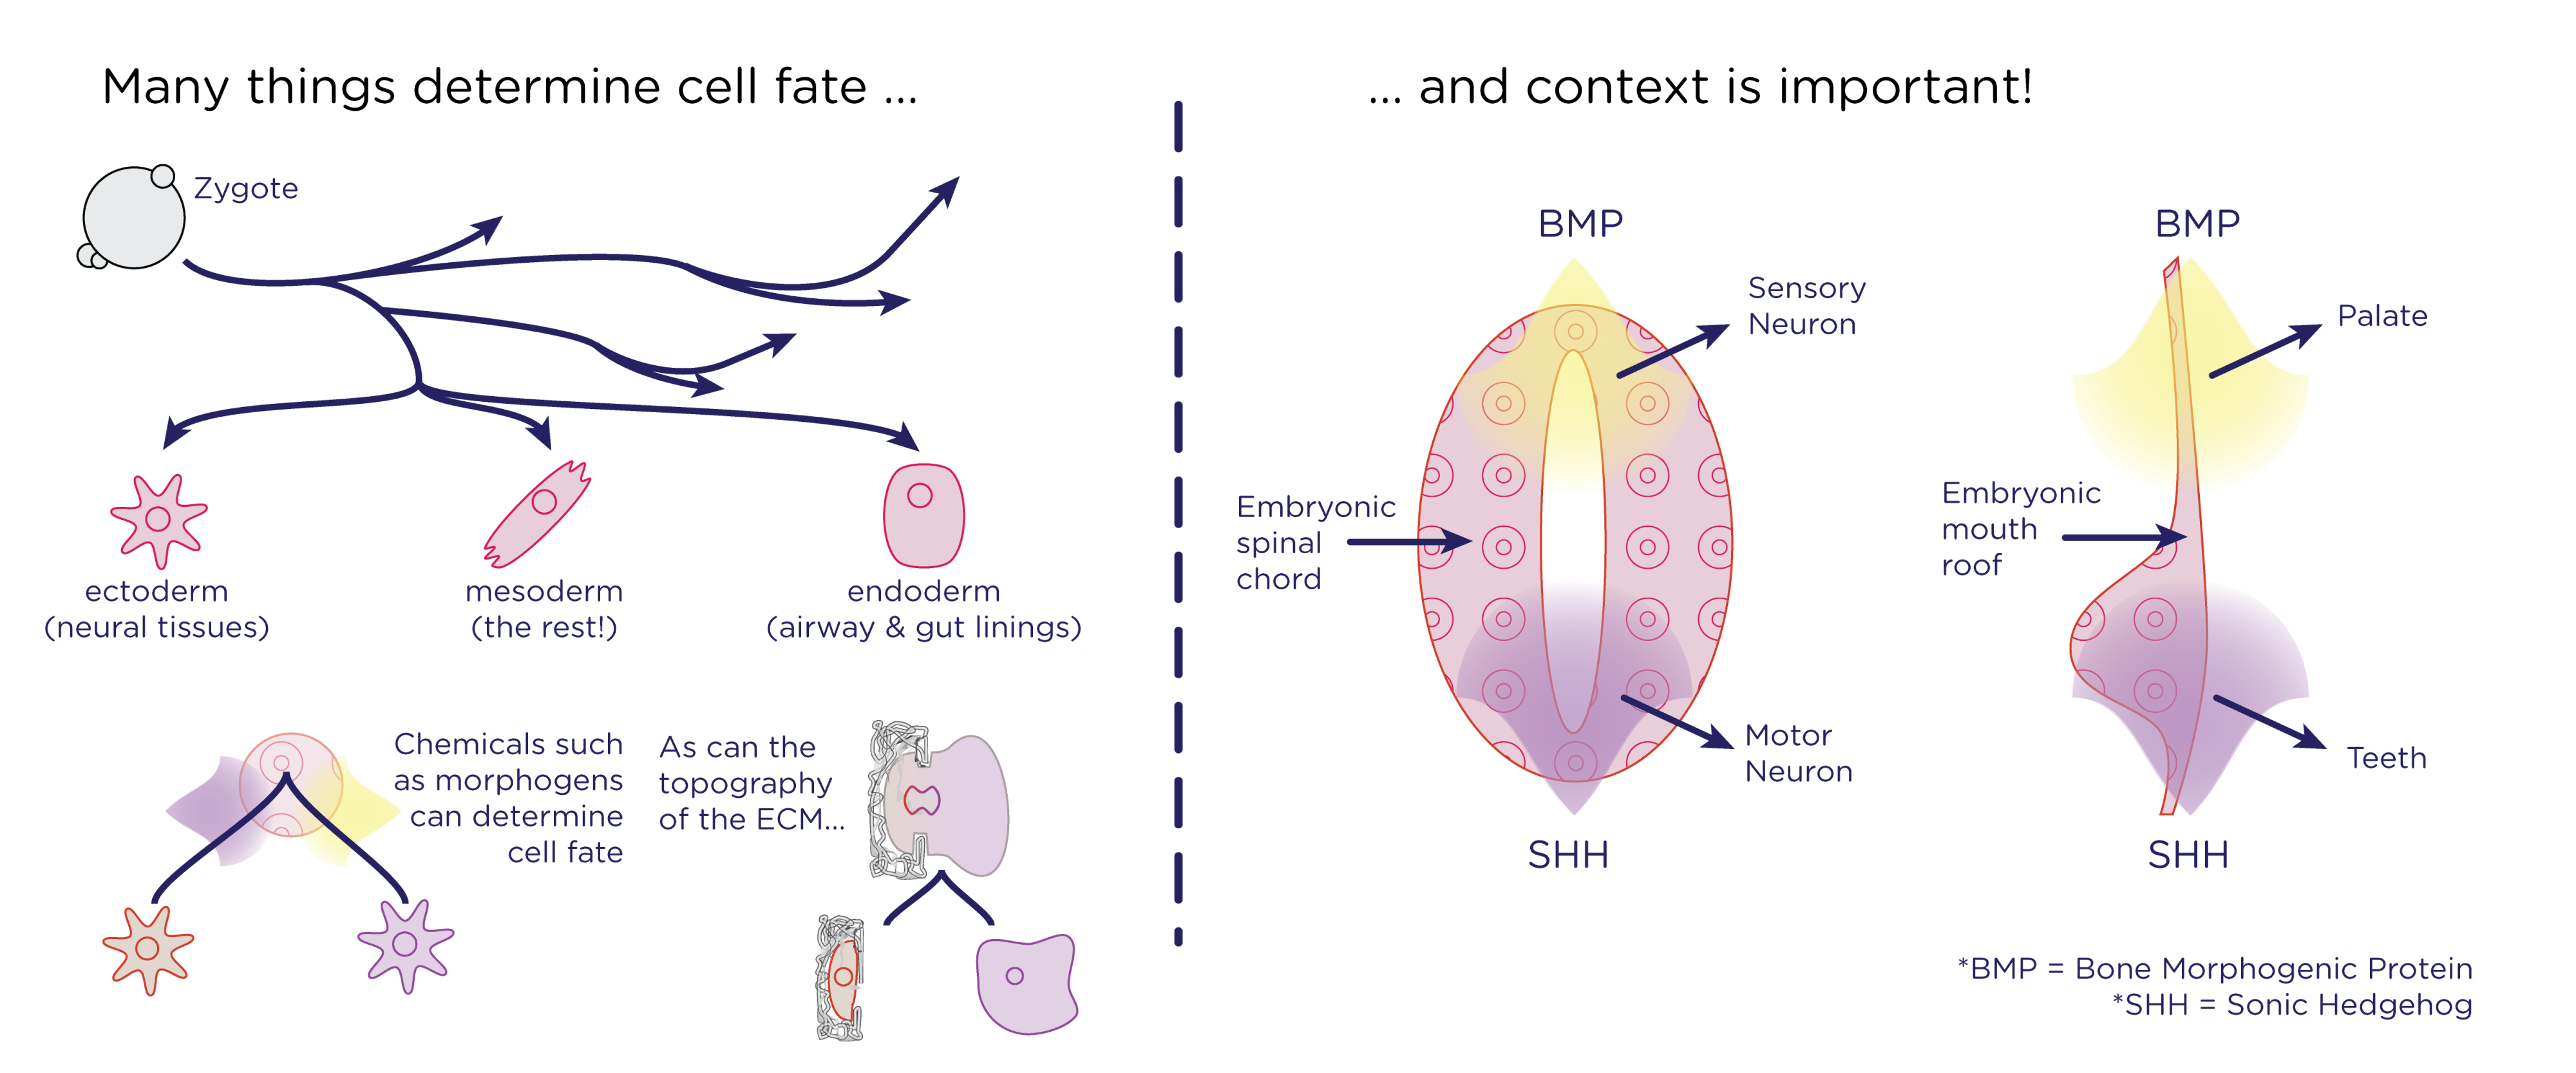 (A): Cell lineages can be determined chemically or structurally. (B): Both the neural tube, and the upper palate [^3] are patterned with the peptide morphogens BMP and SHH.